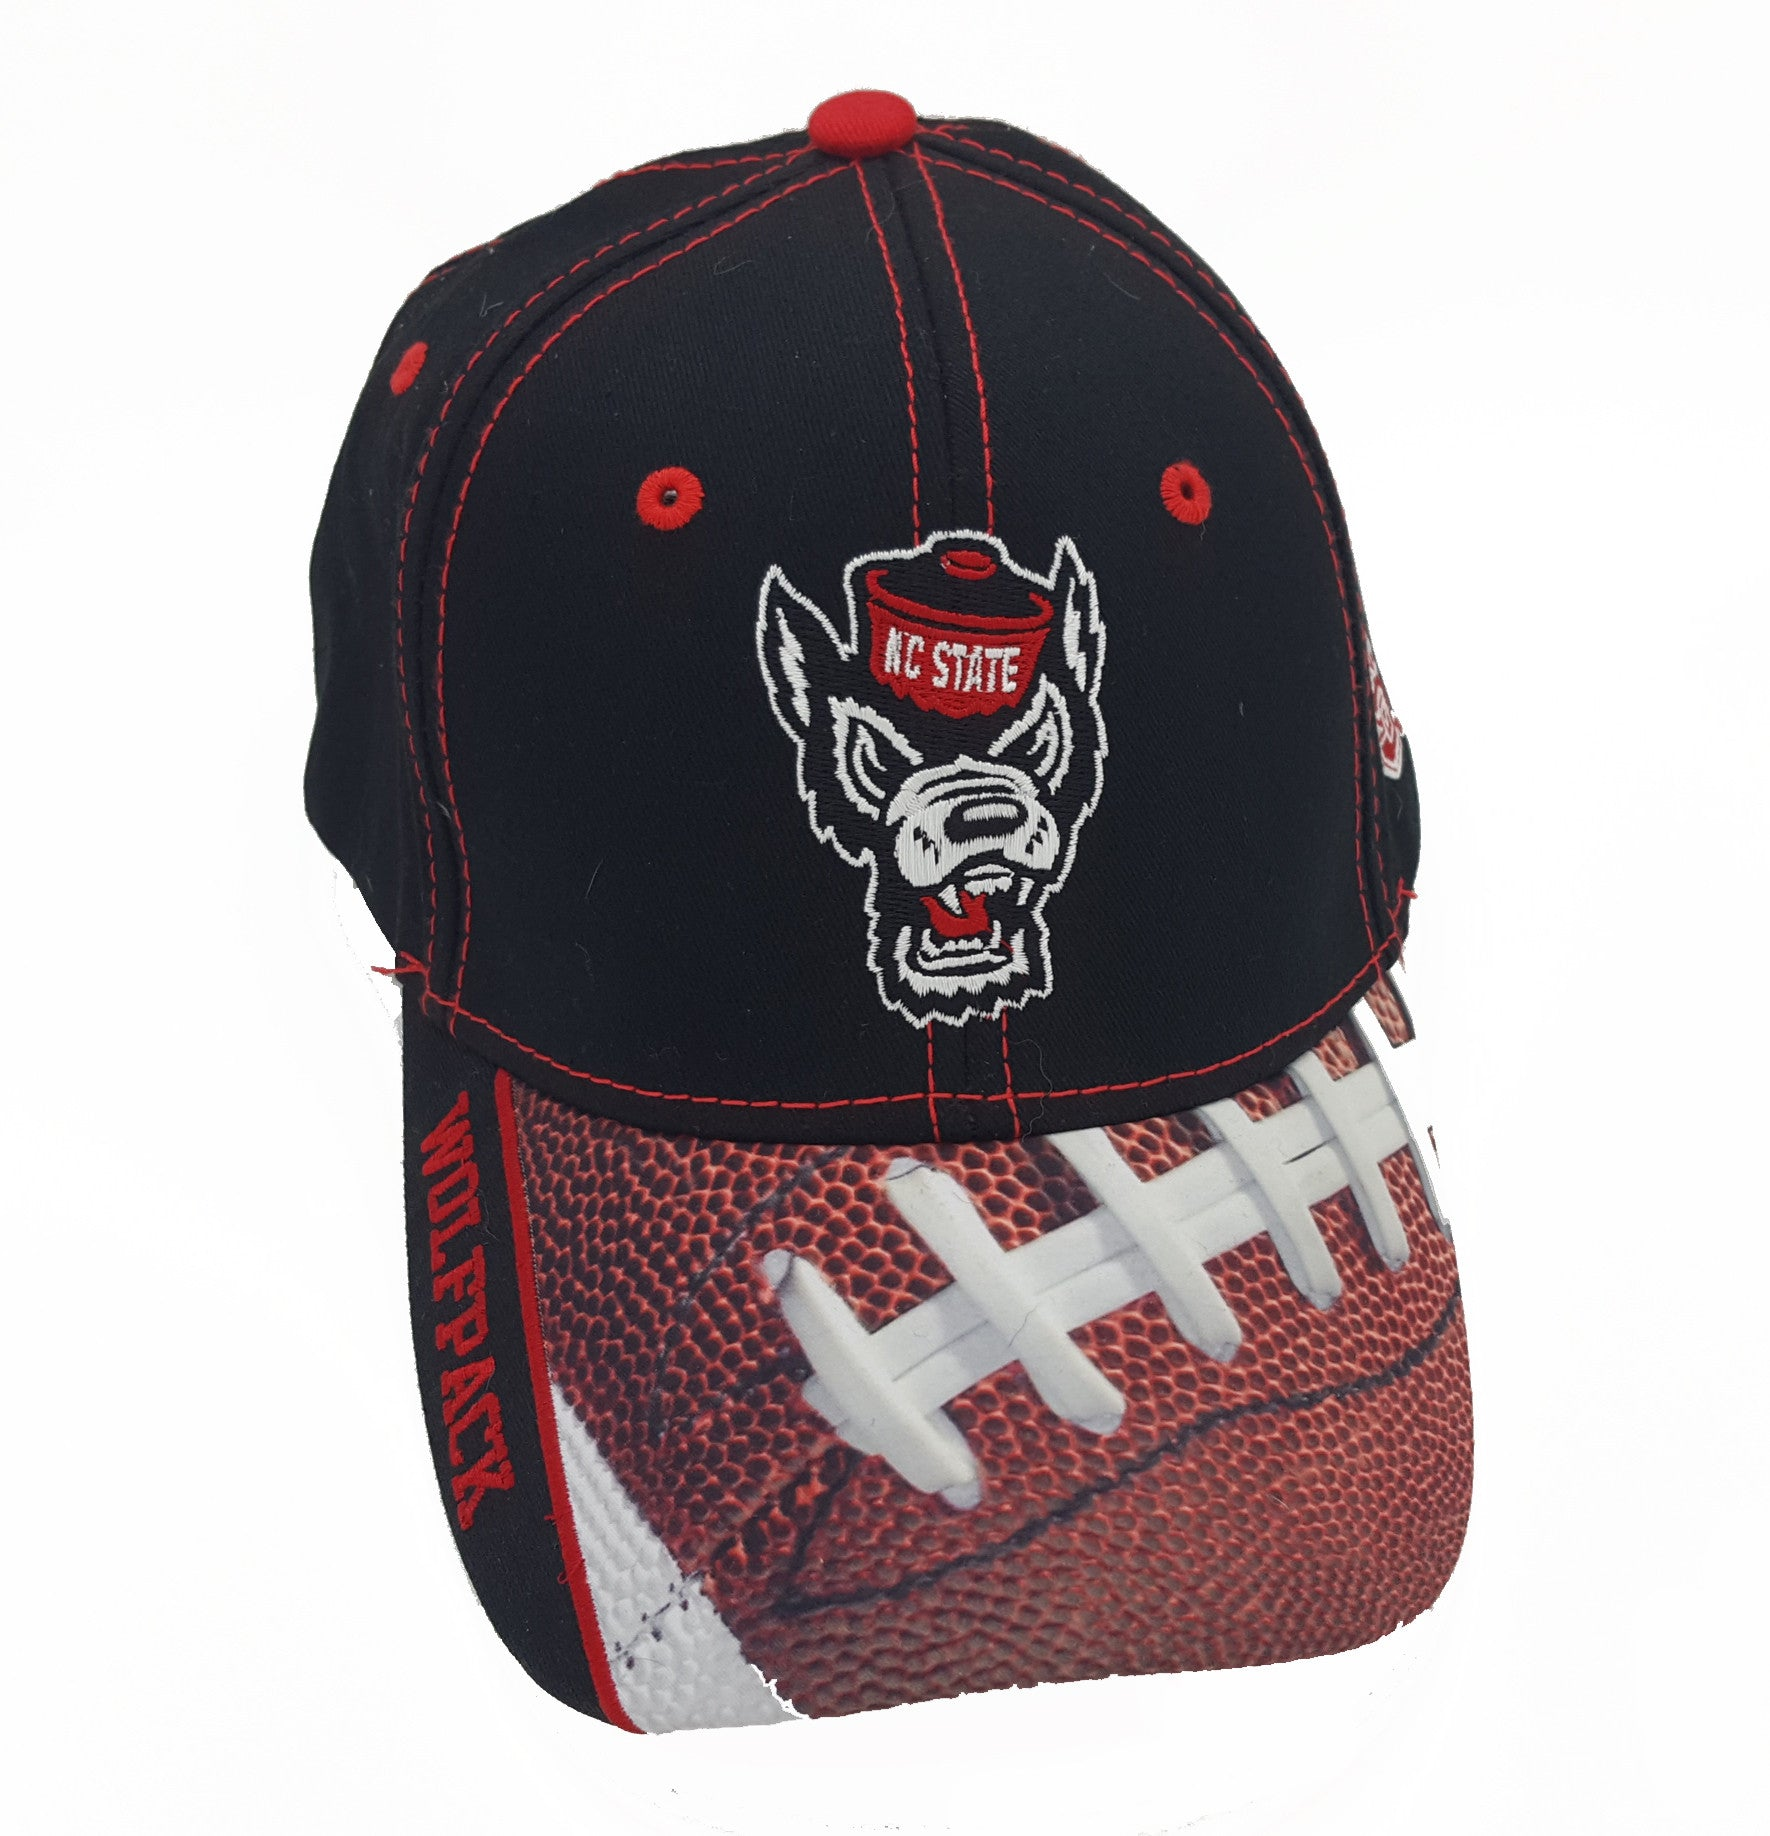 16dca2669 NC State Wolfpack Football Cap